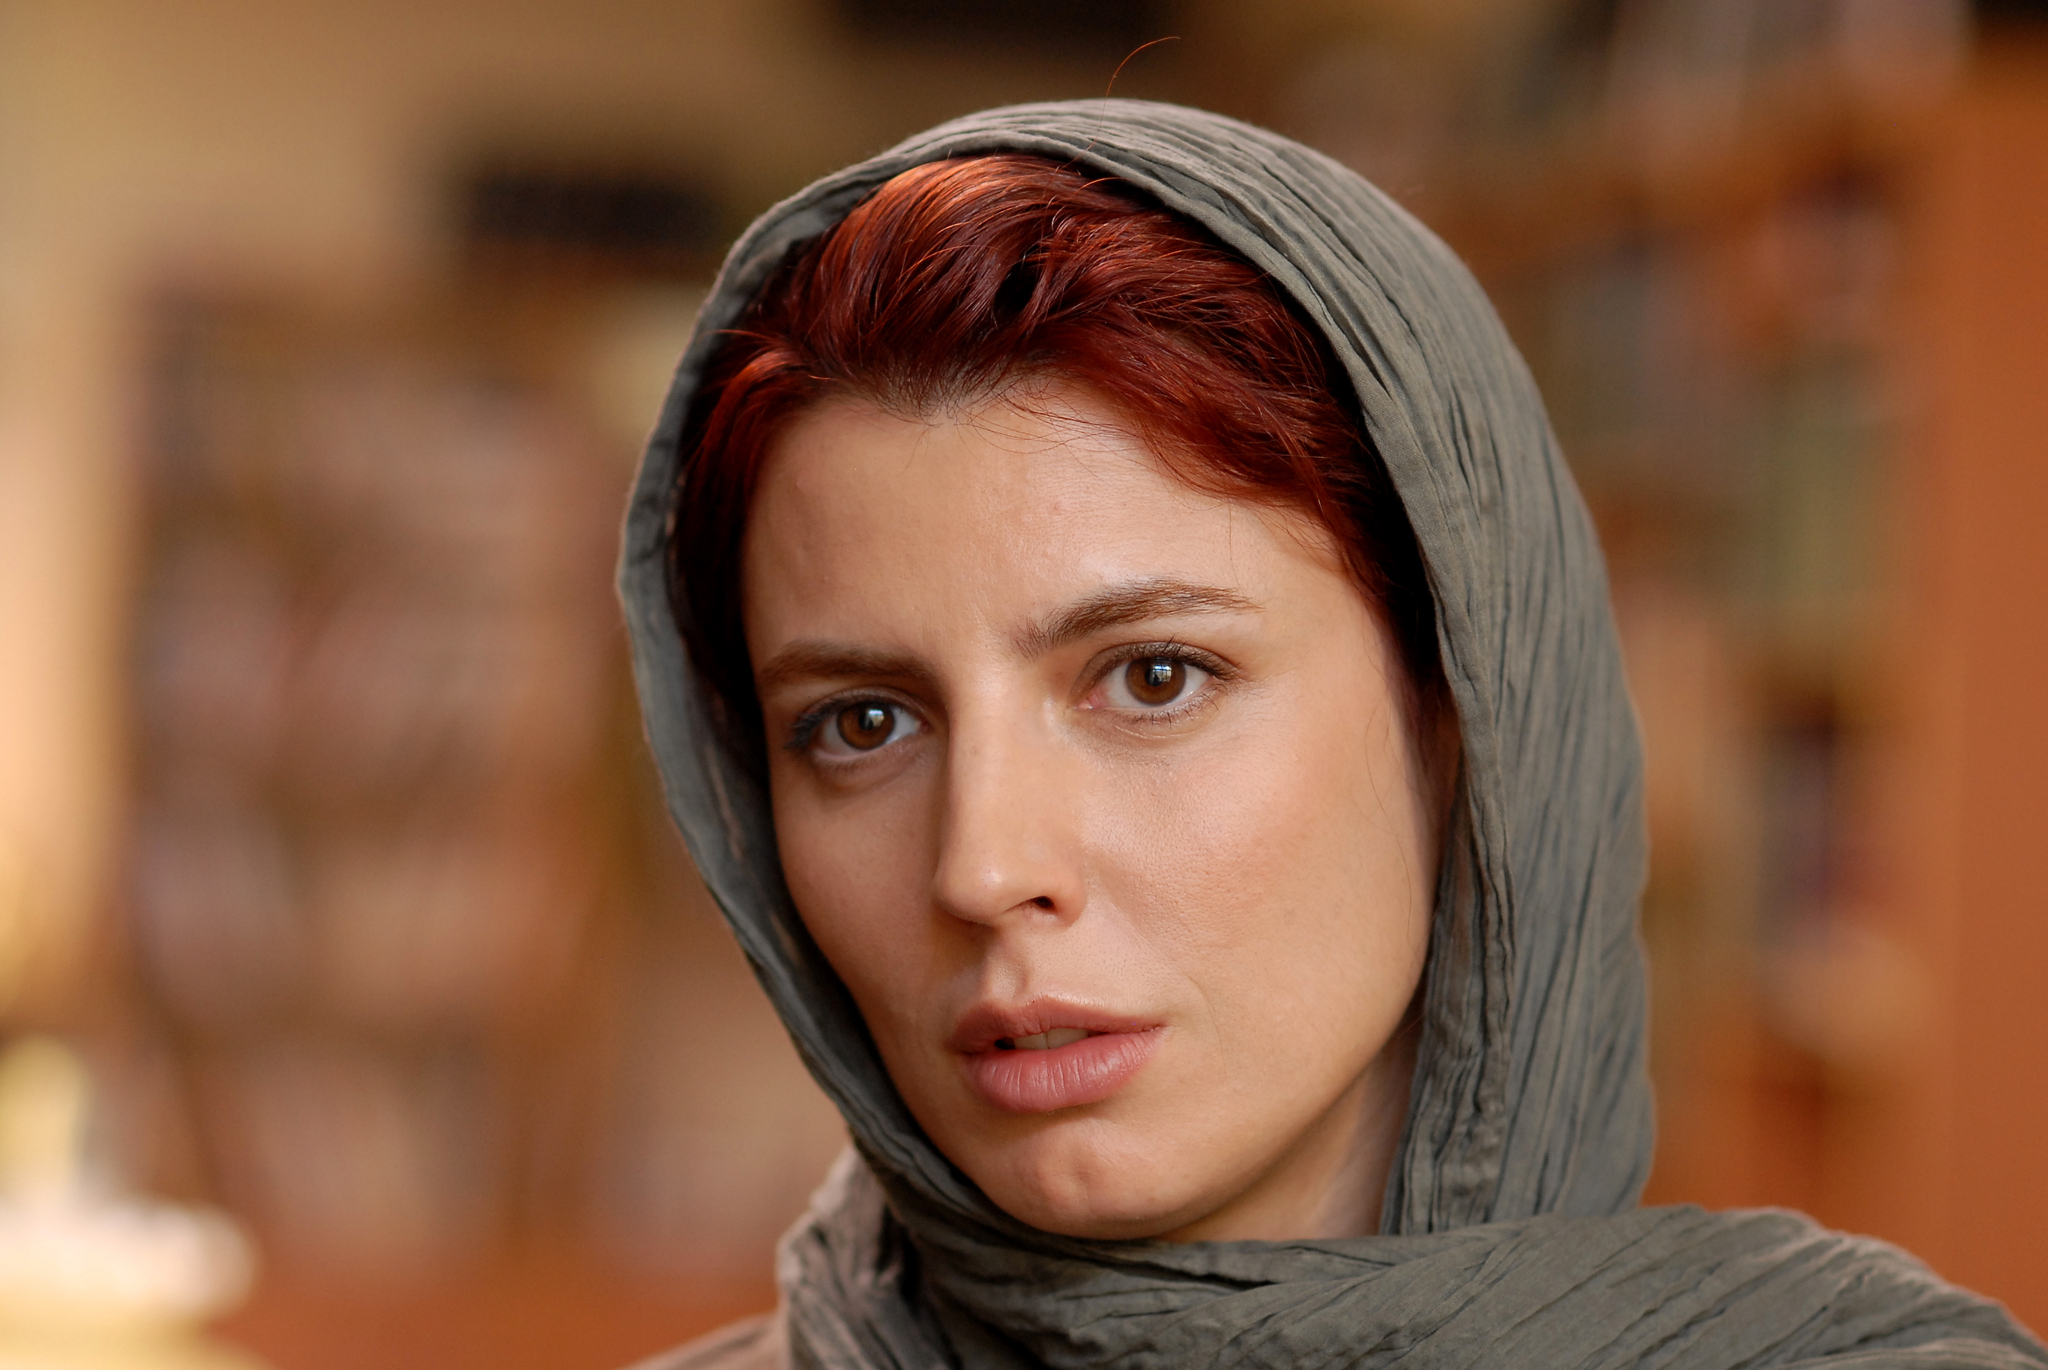 Leila Hatami nude photos 2019